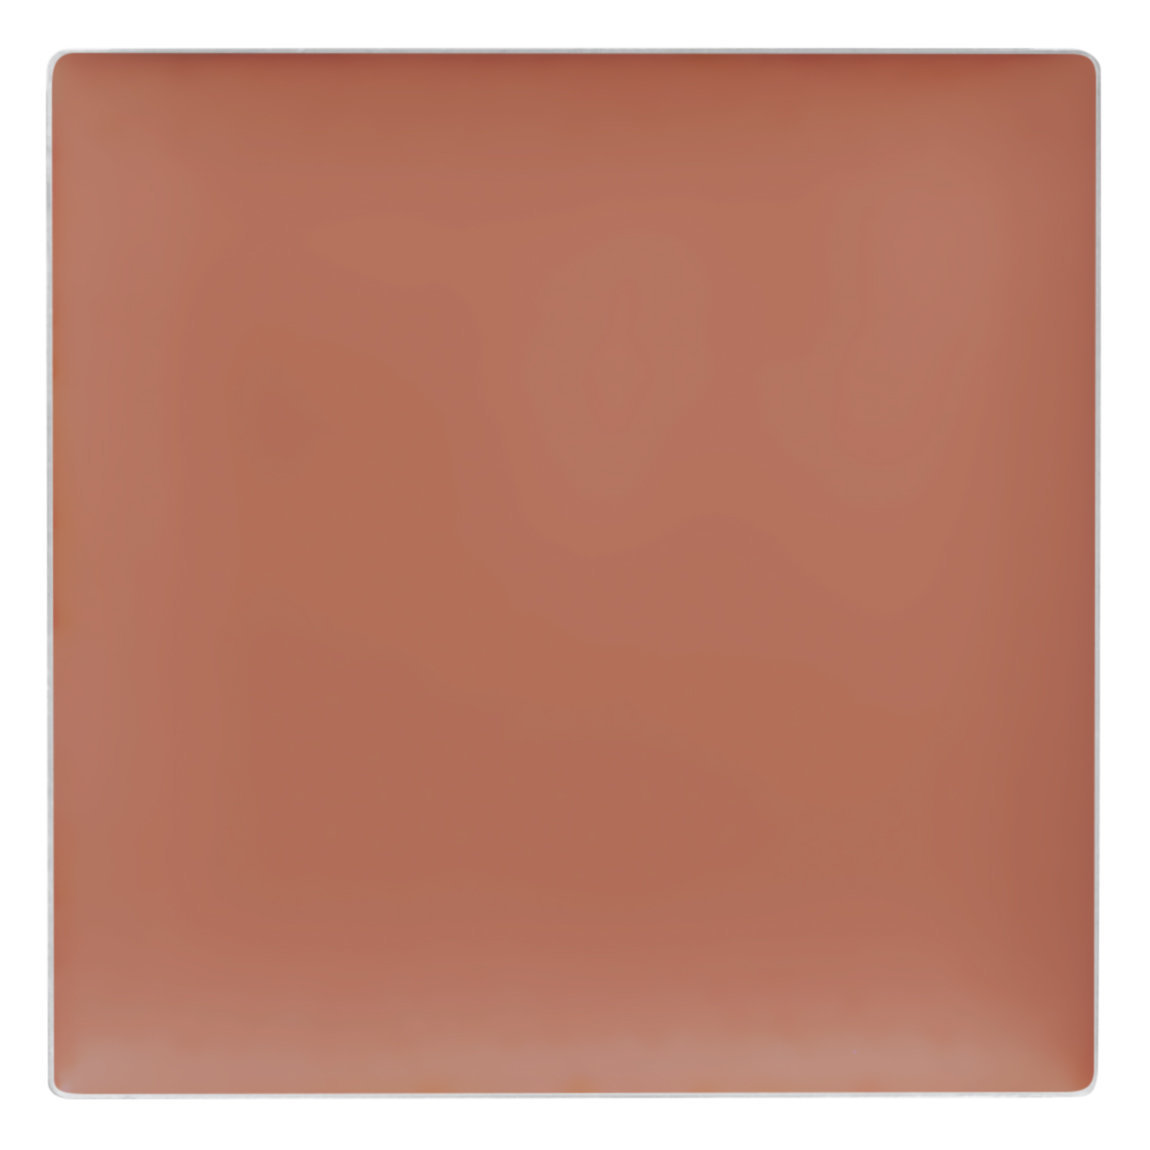 Kjaer Weis Cream Blush Refill Desired Glow alternative view 1 - product swatch.